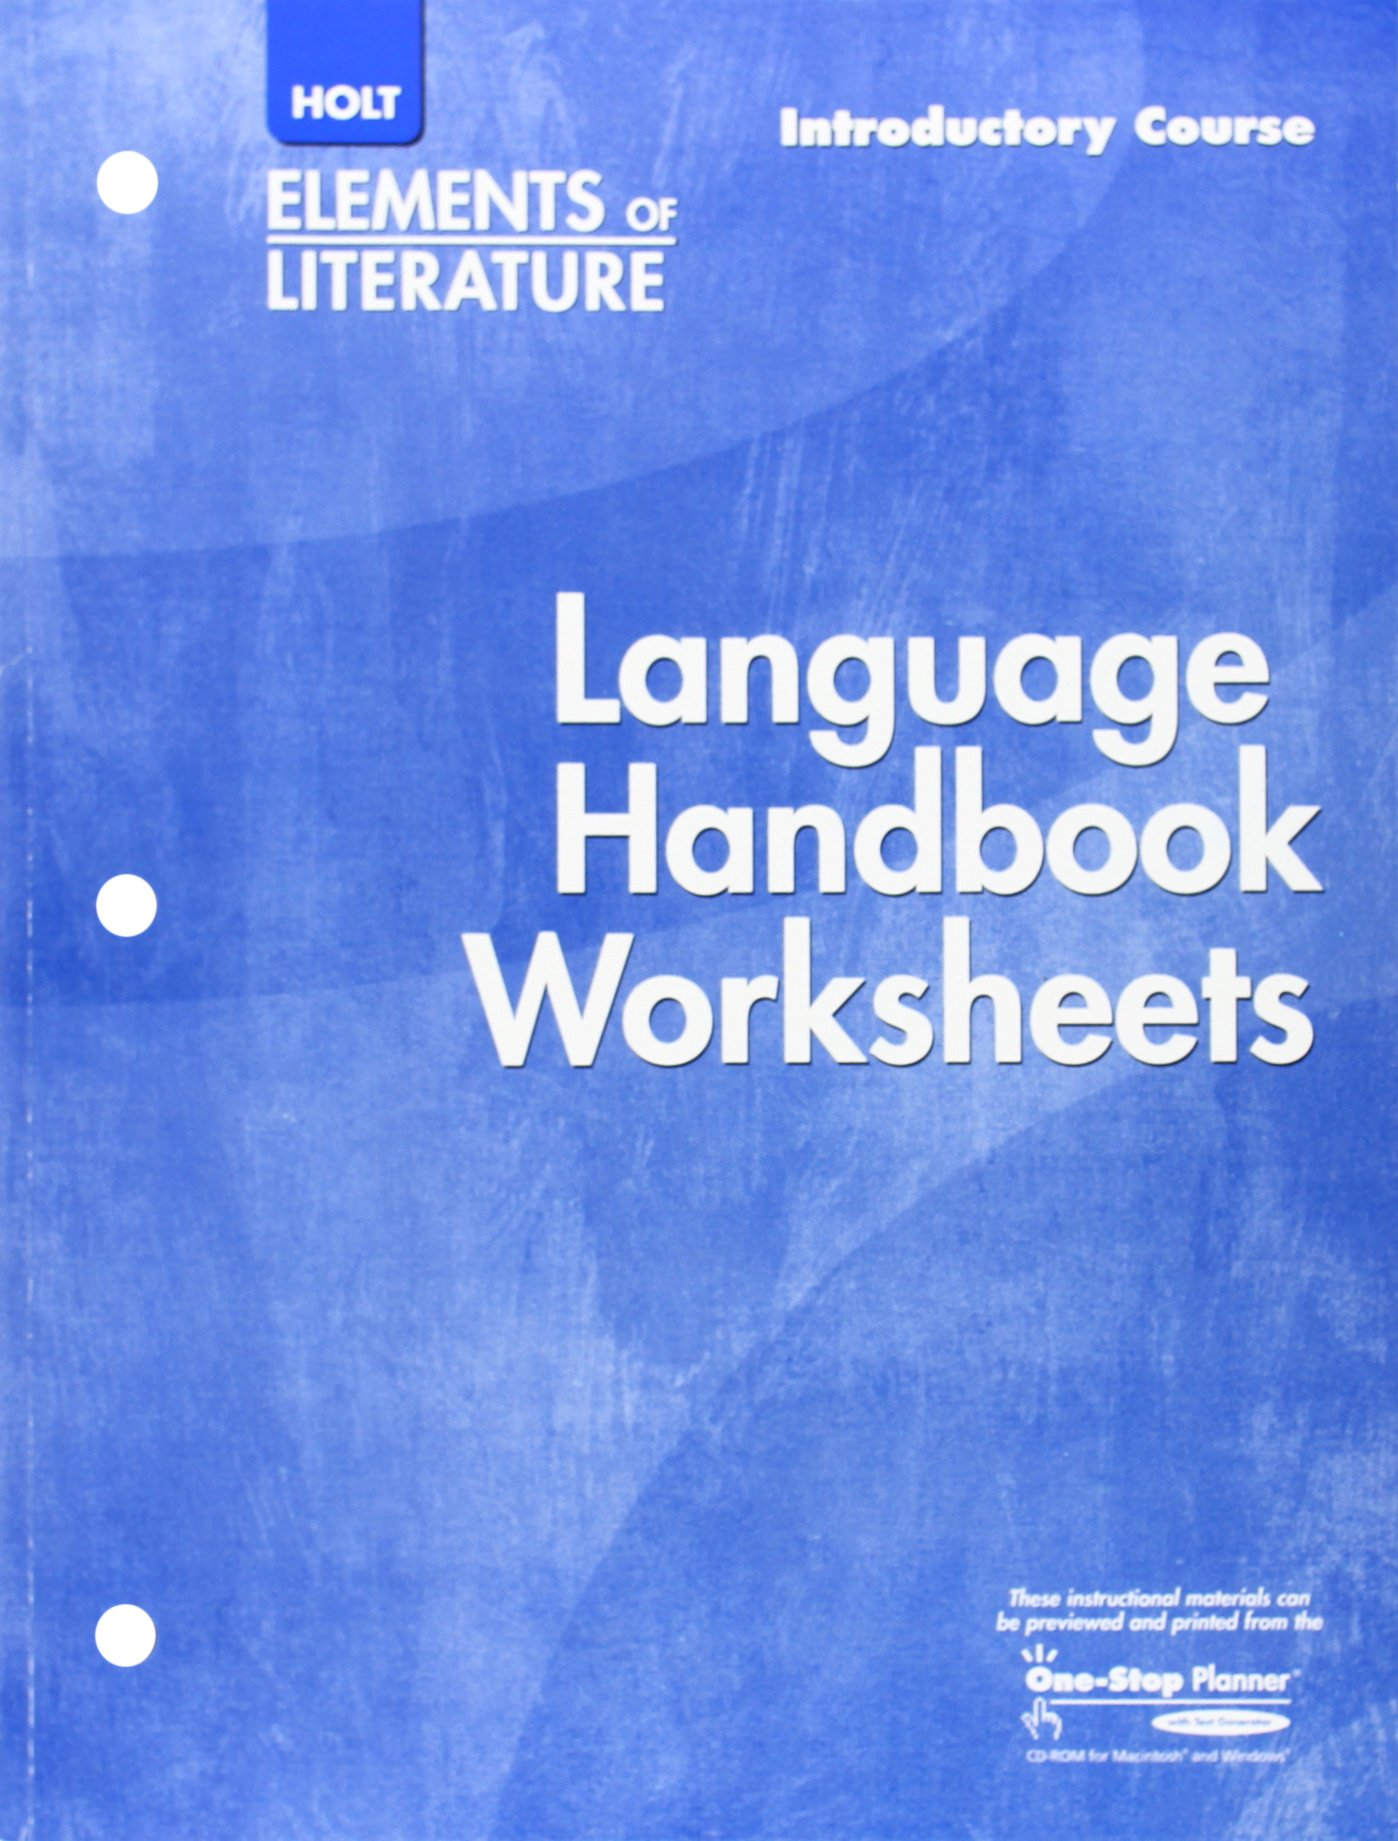 Worksheets Language Handbook Worksheets Answer Key Online holt elements of literature language handbook worksheets introductory course grade 6 rinehart and winston 9780030739170 amazon